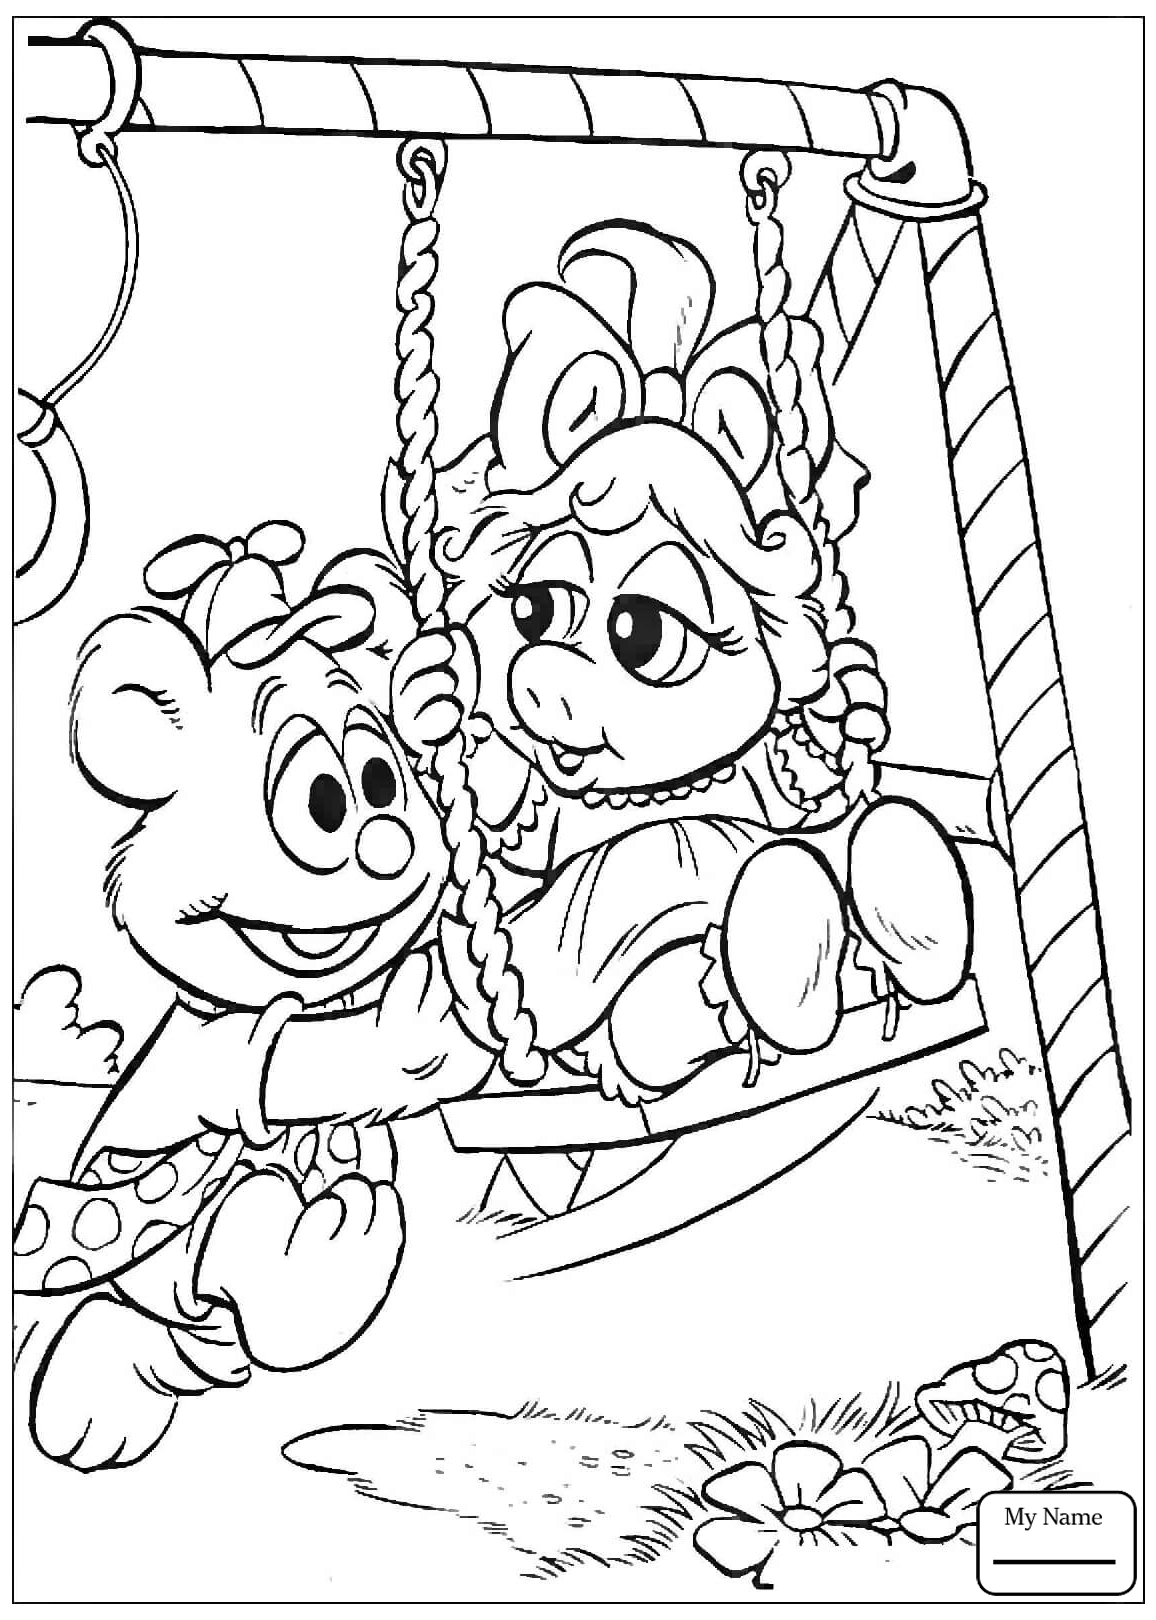 1156x1620 Coloring Pages For Kids Muppets Babies Animal On The Boat